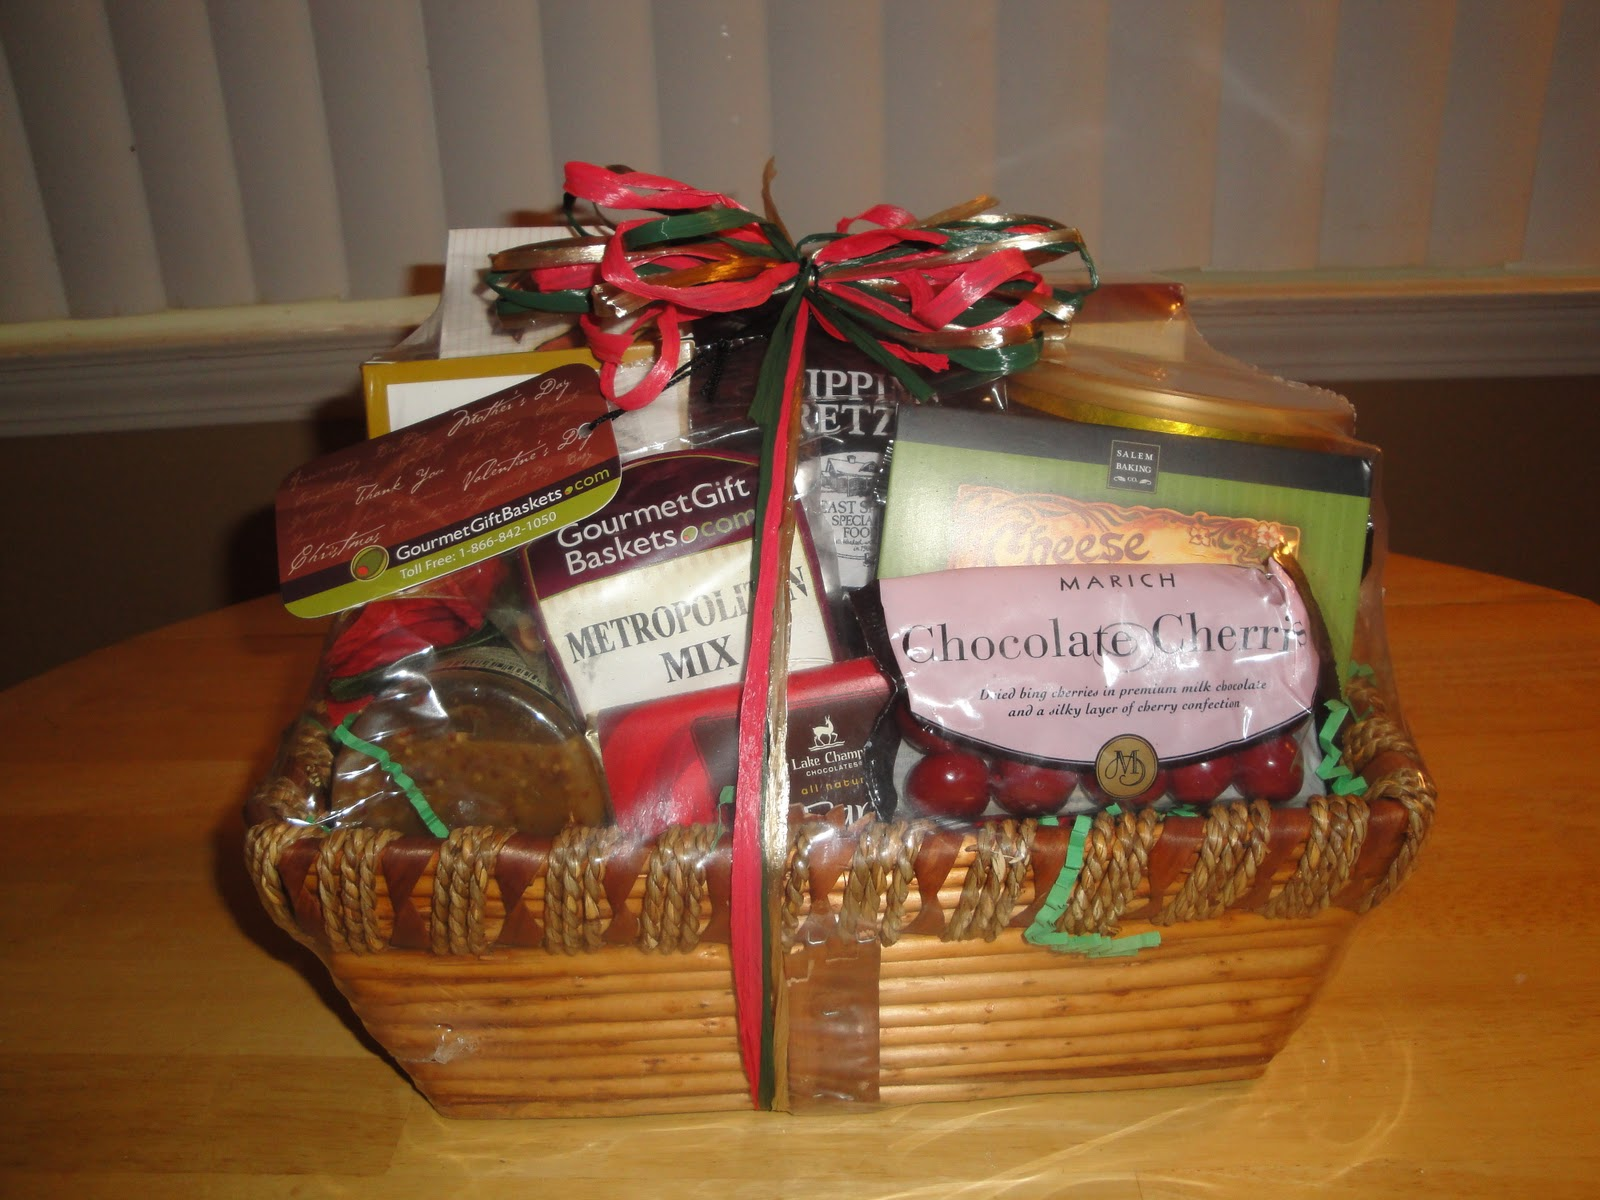 Gourmet Gift Baskets Christmas Gift Baskets Review Holiday Gift ...